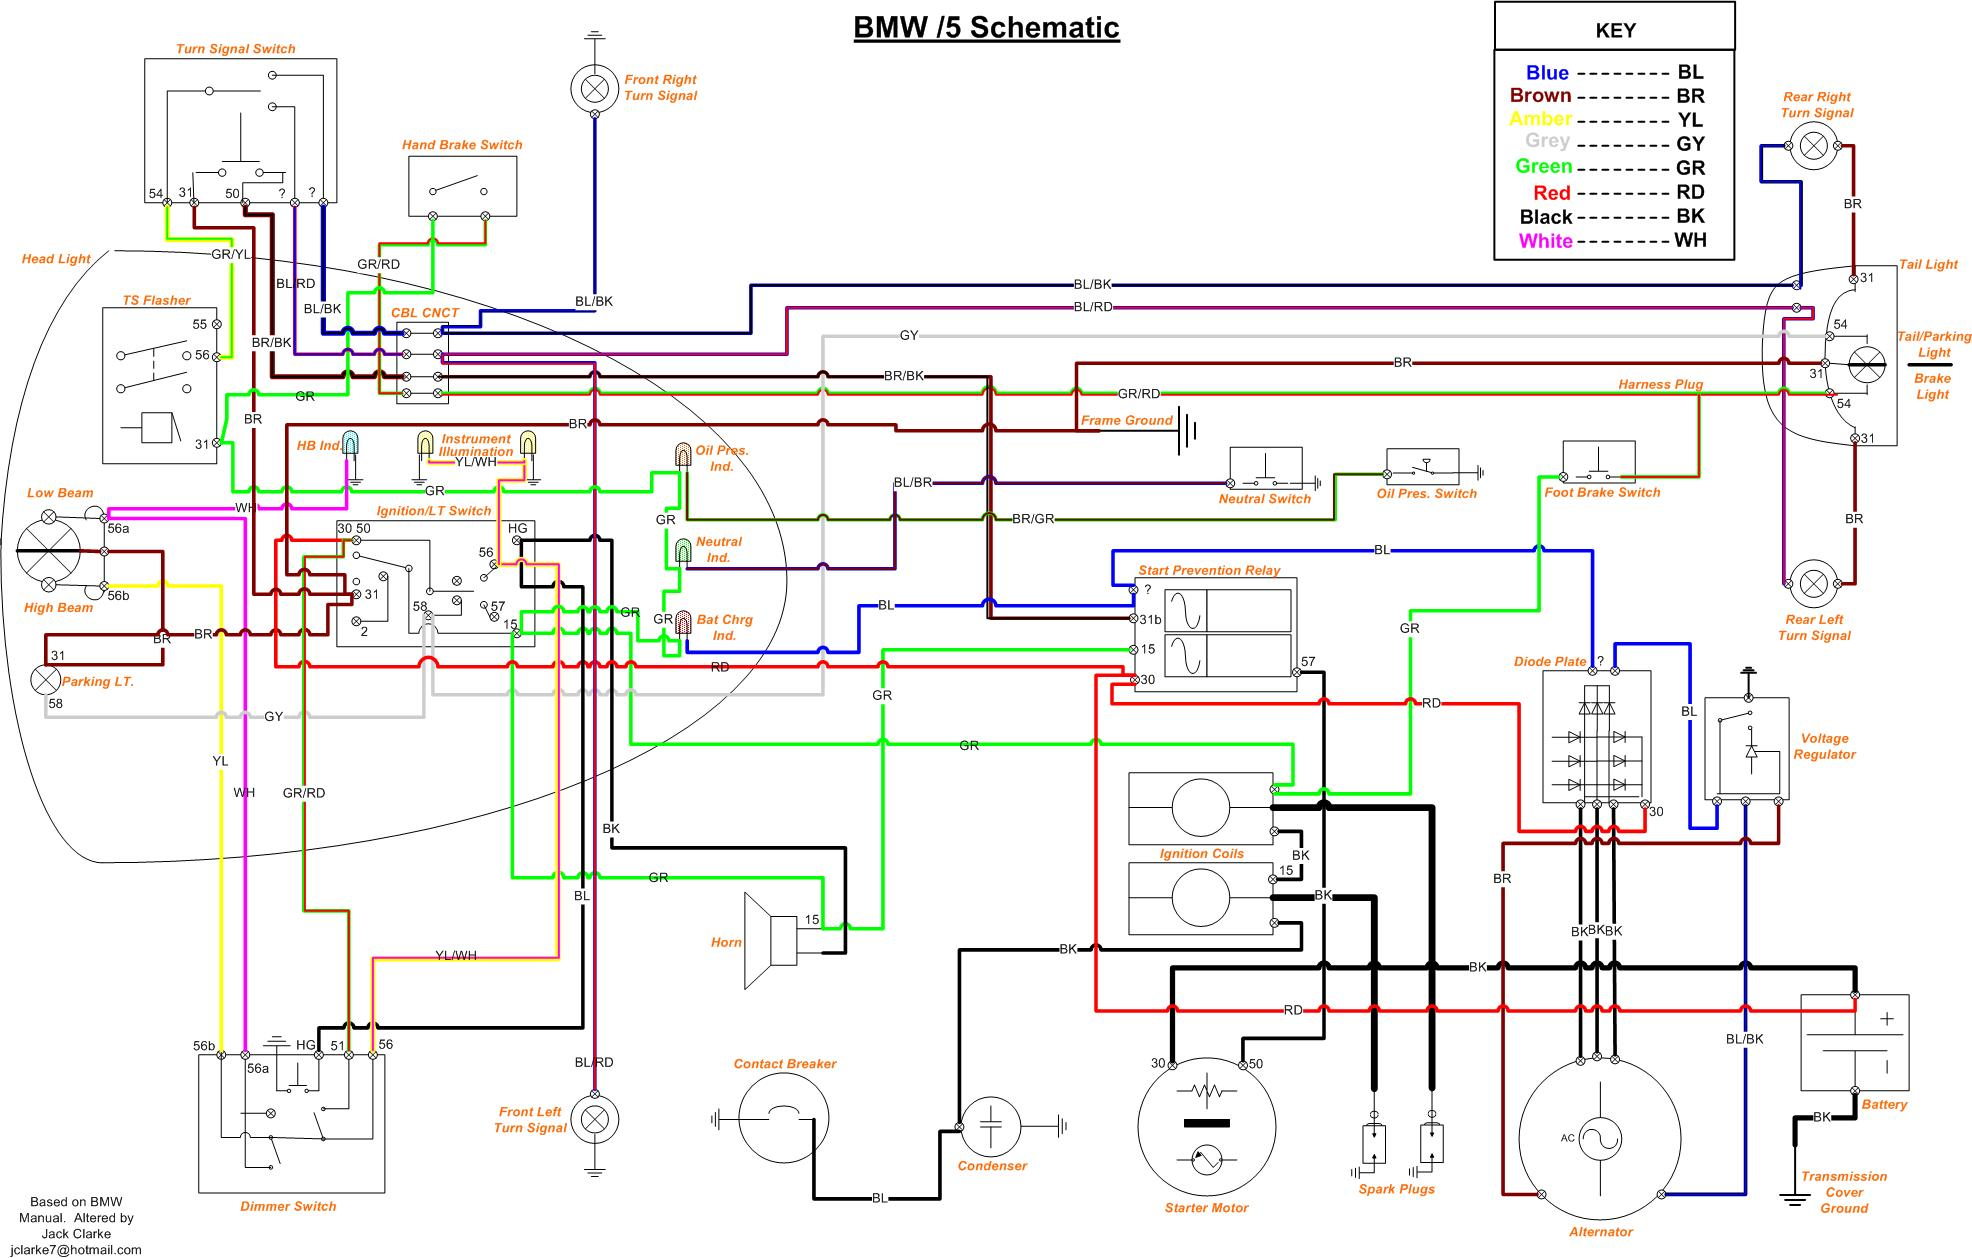 bmw motorcycle schematic diagrams r51 3 r50 5 r60 5 r75 5 this is the very best schematic for the 5 that i recall seeing bar none we all owe jack a big thank you for taking the time to do this up on